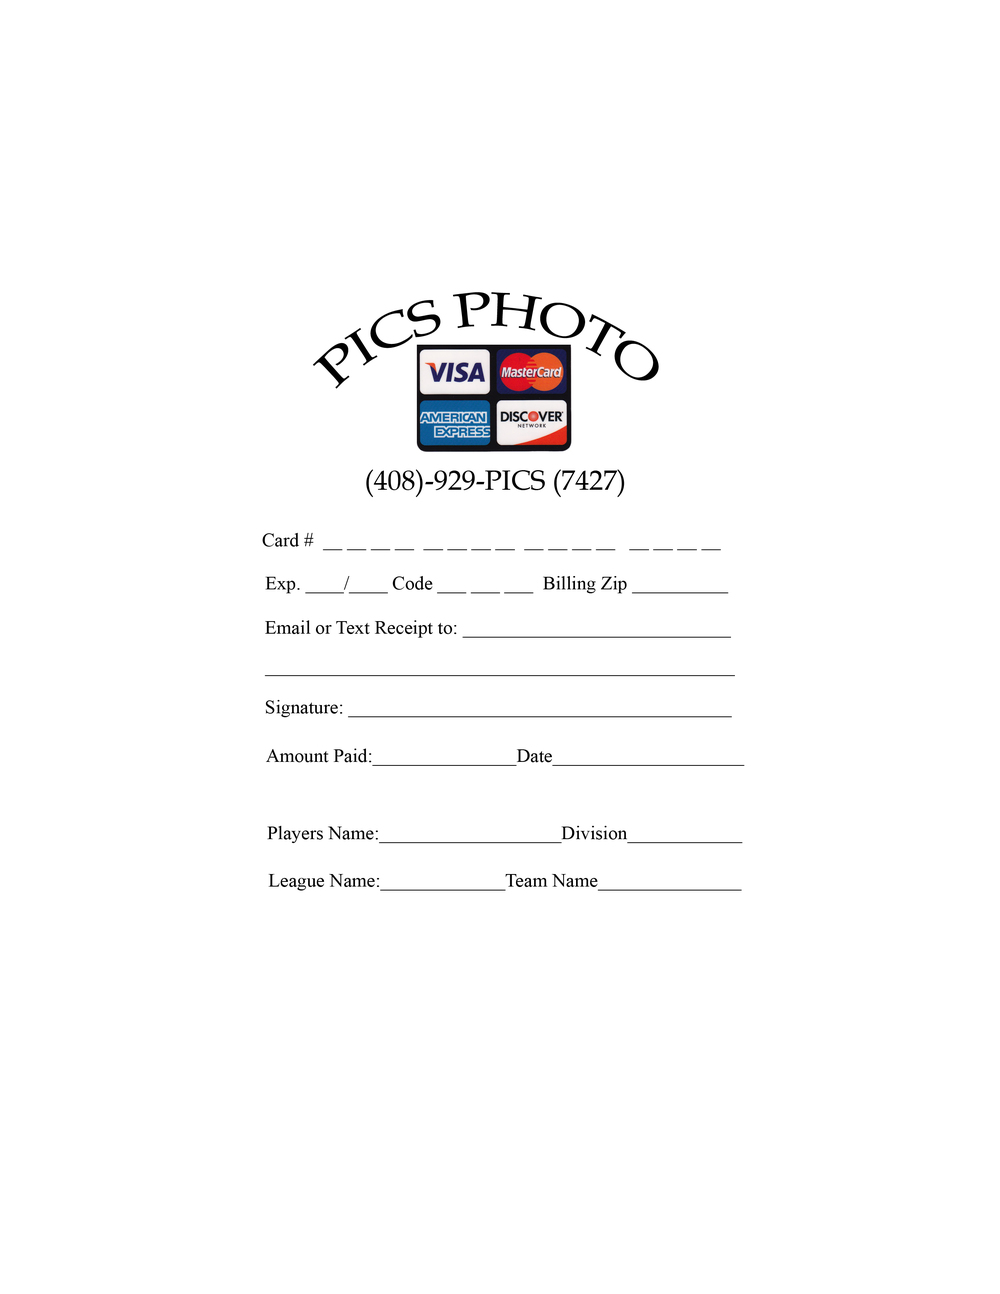 order forms downloads pics sports event photography